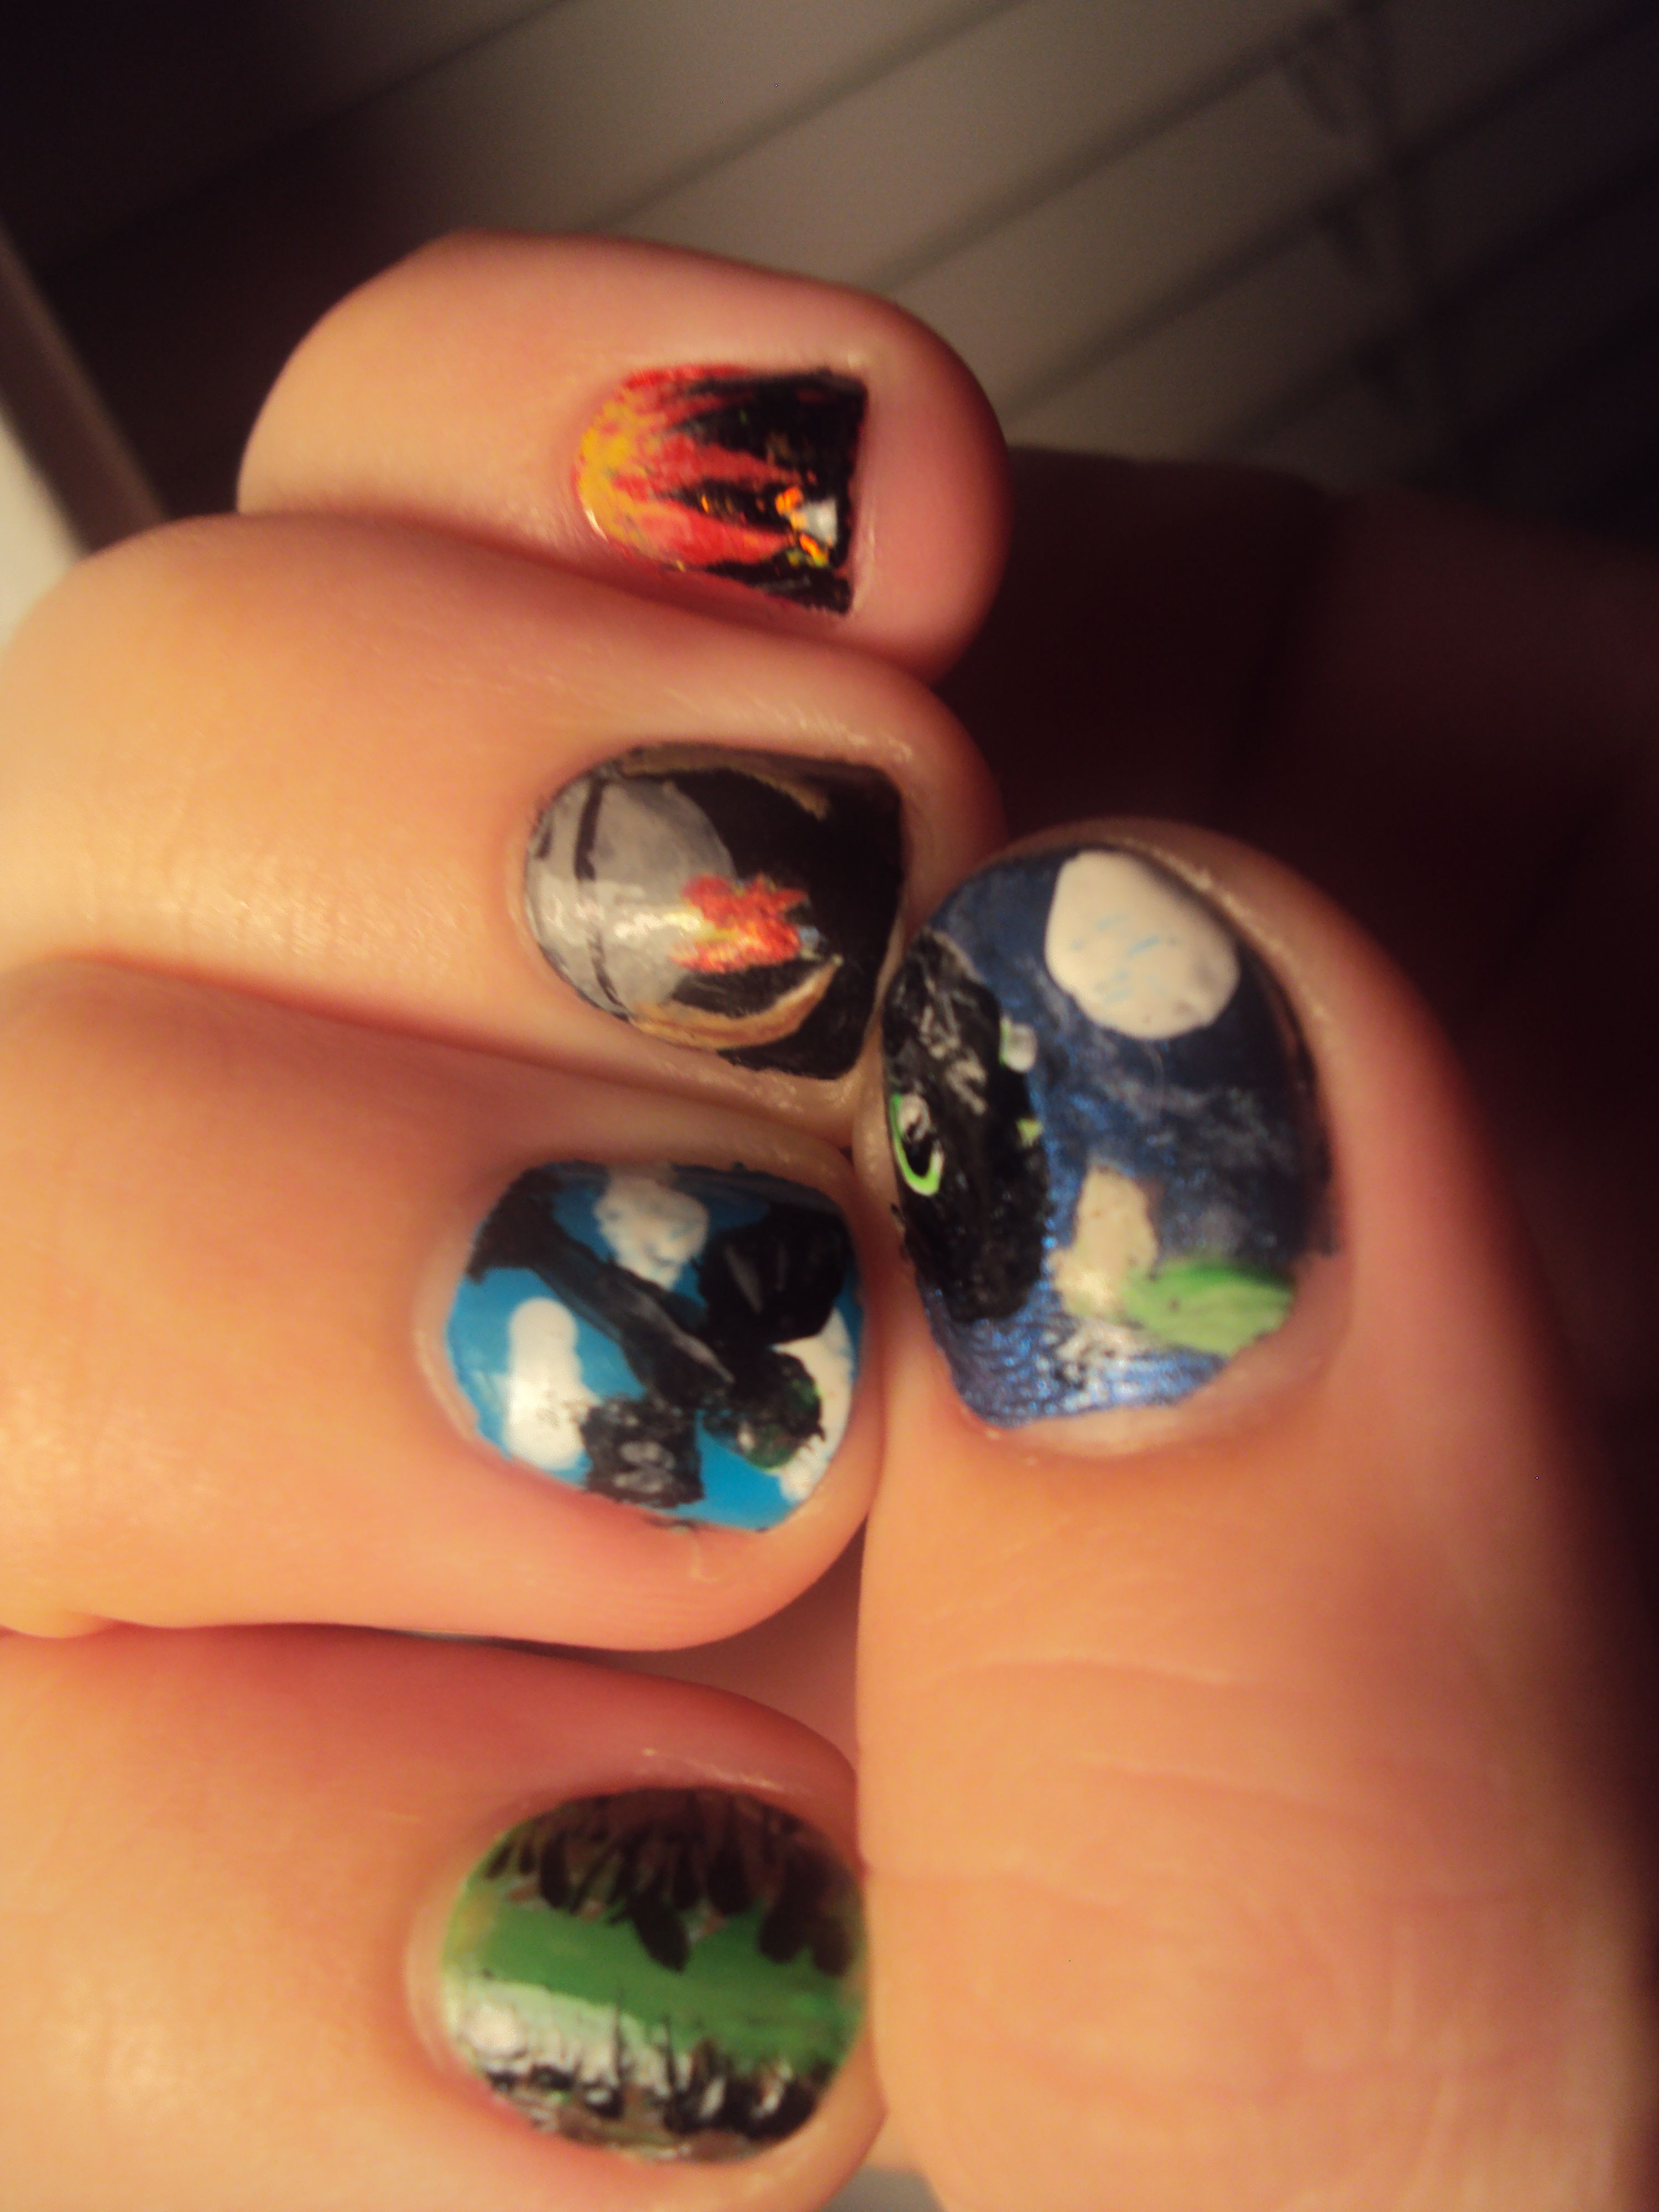 How to Train Your Dragon nails | for the nerd in all of us ...